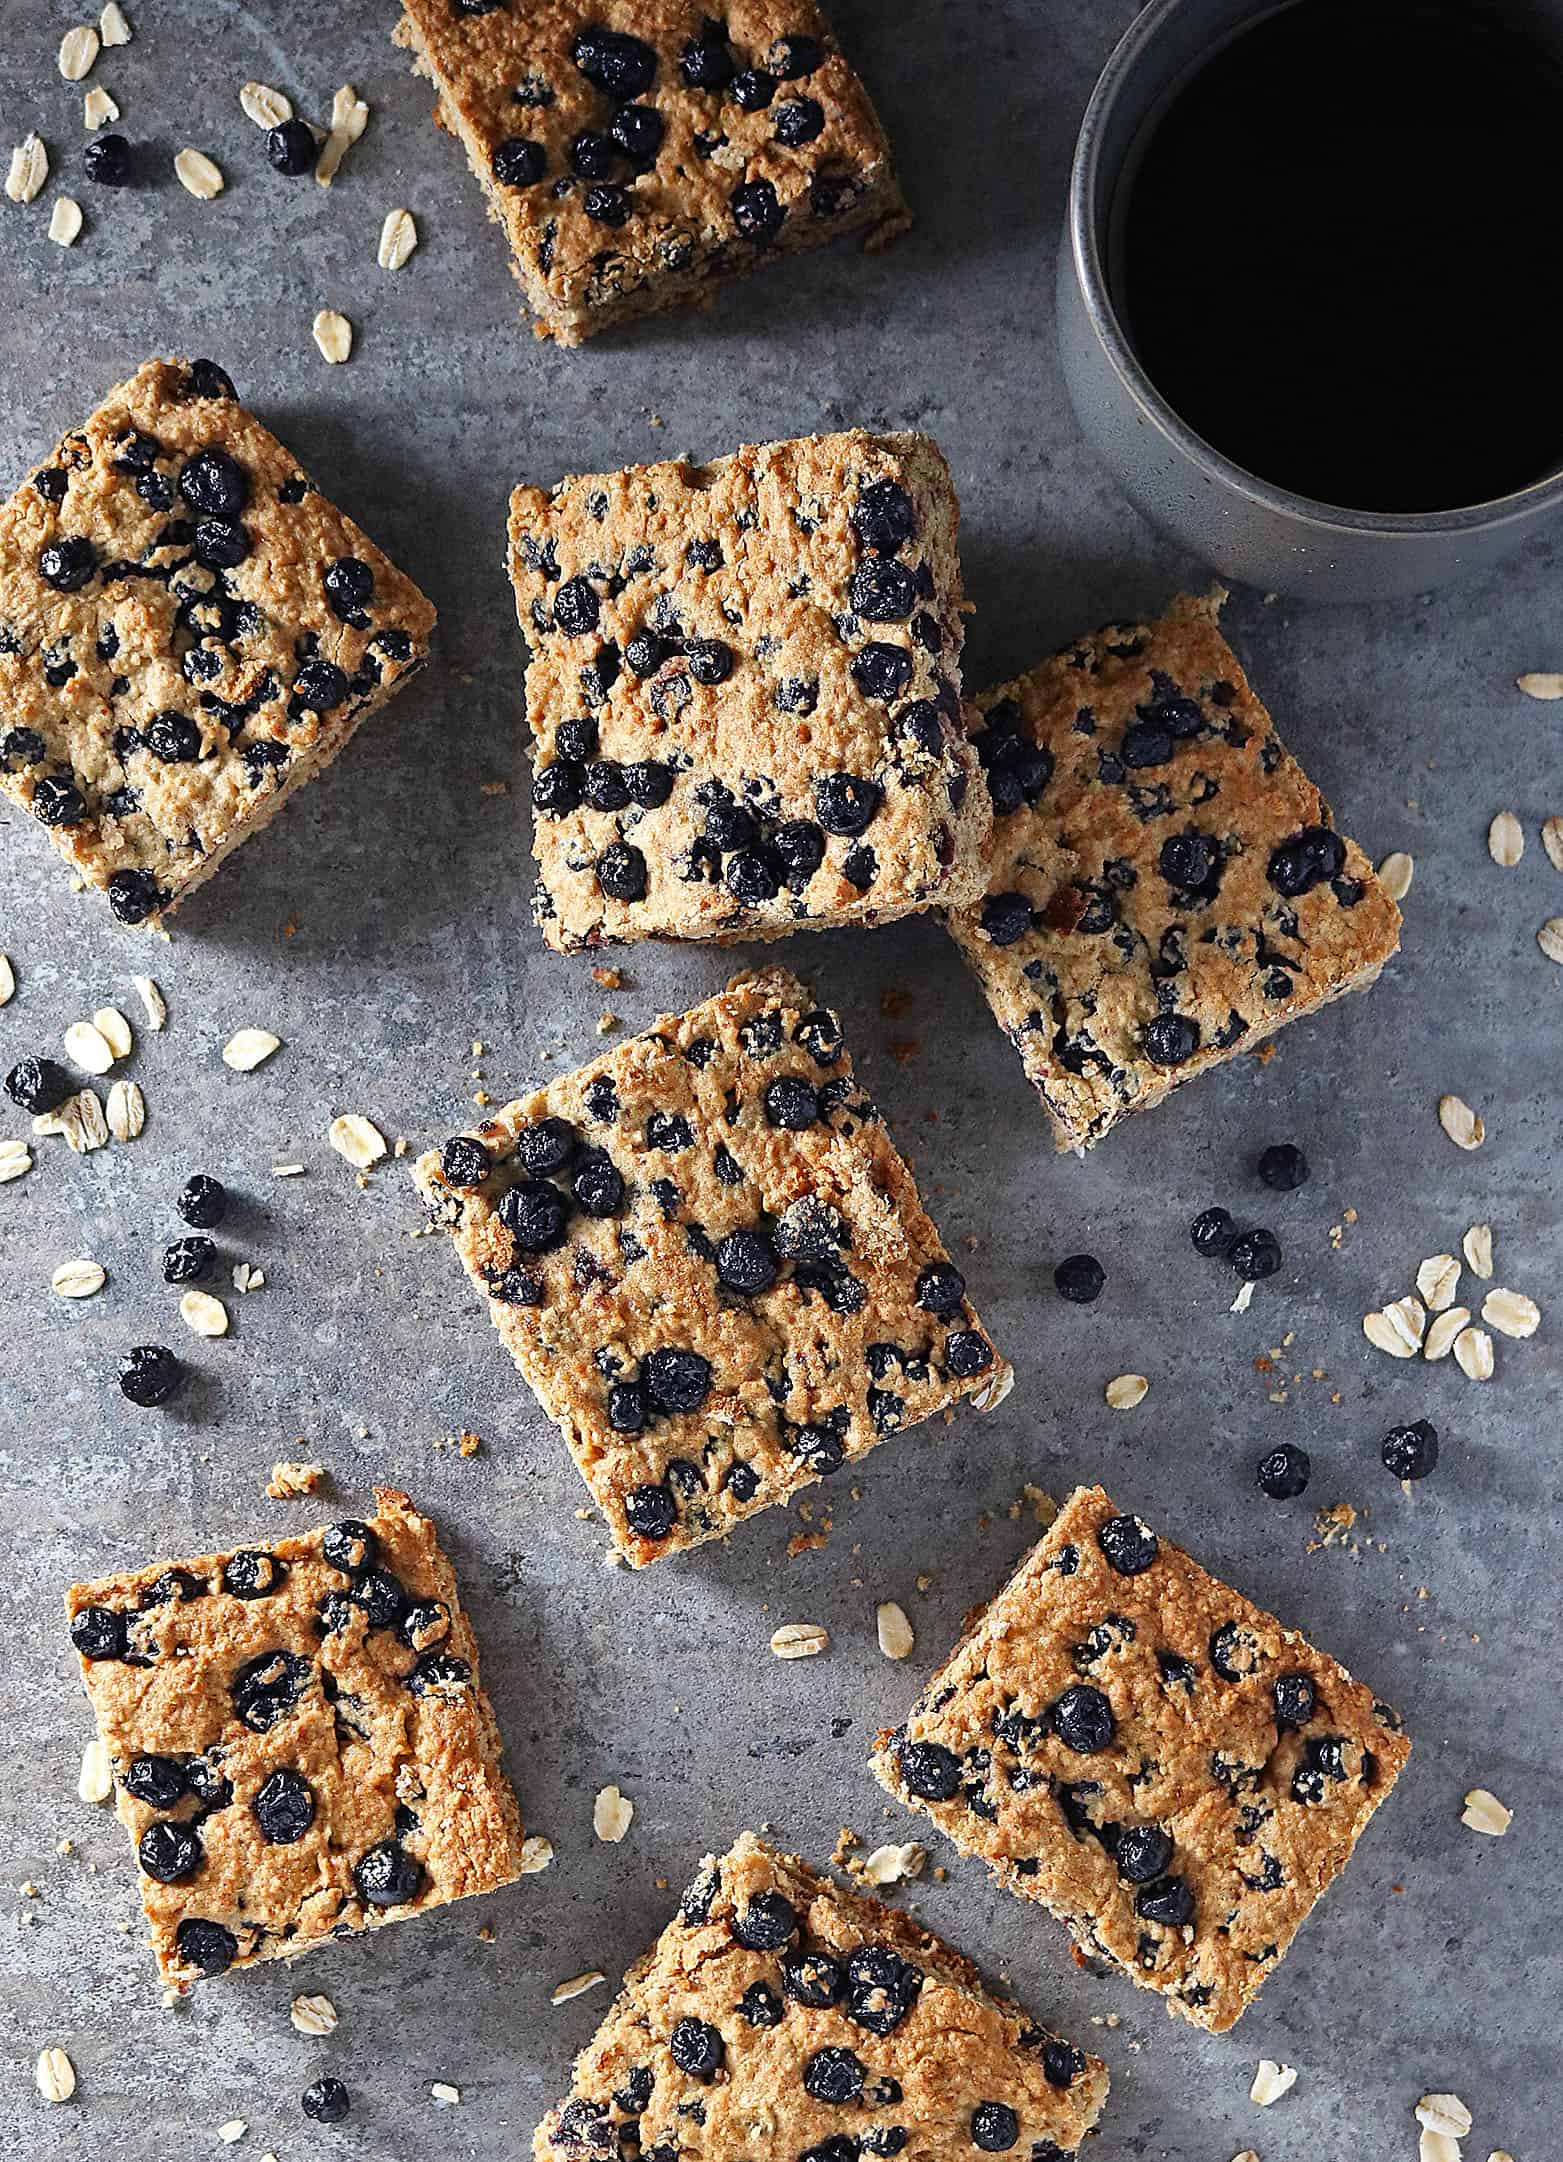 Easy Gluten Free Refined Sugar Free Blueberry Bars